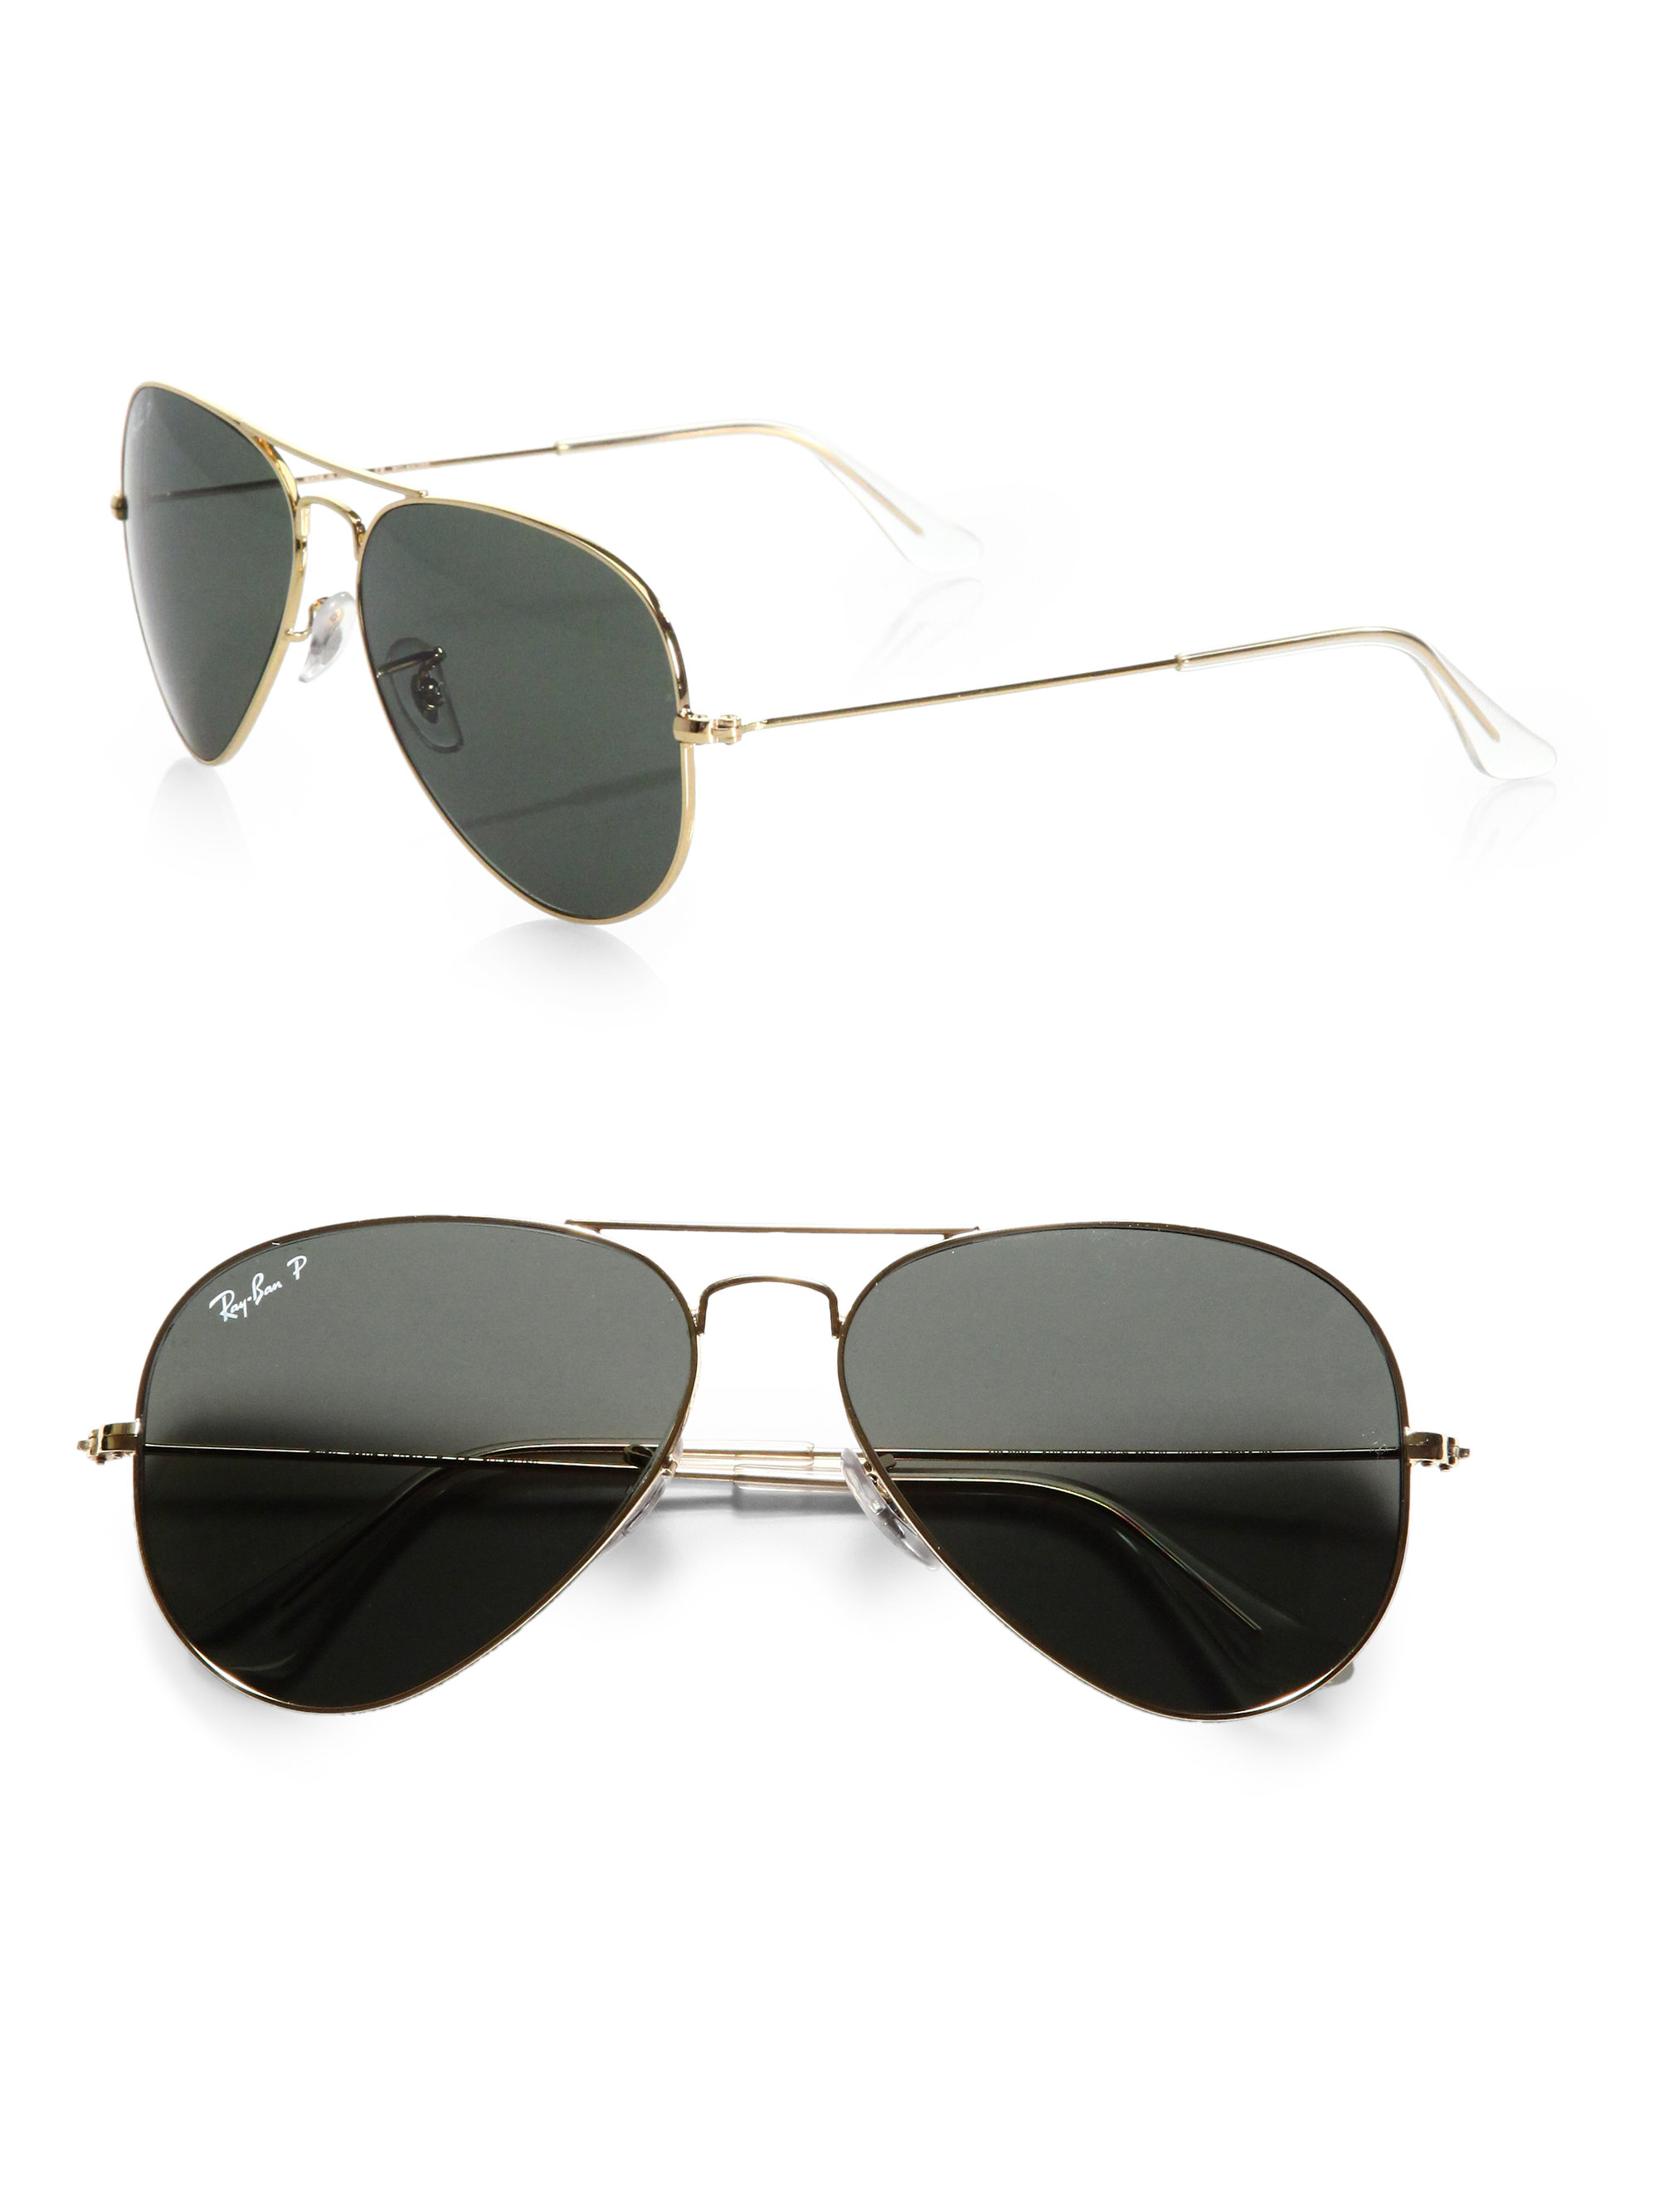 ray ban aviator pewter polarized sunglasses